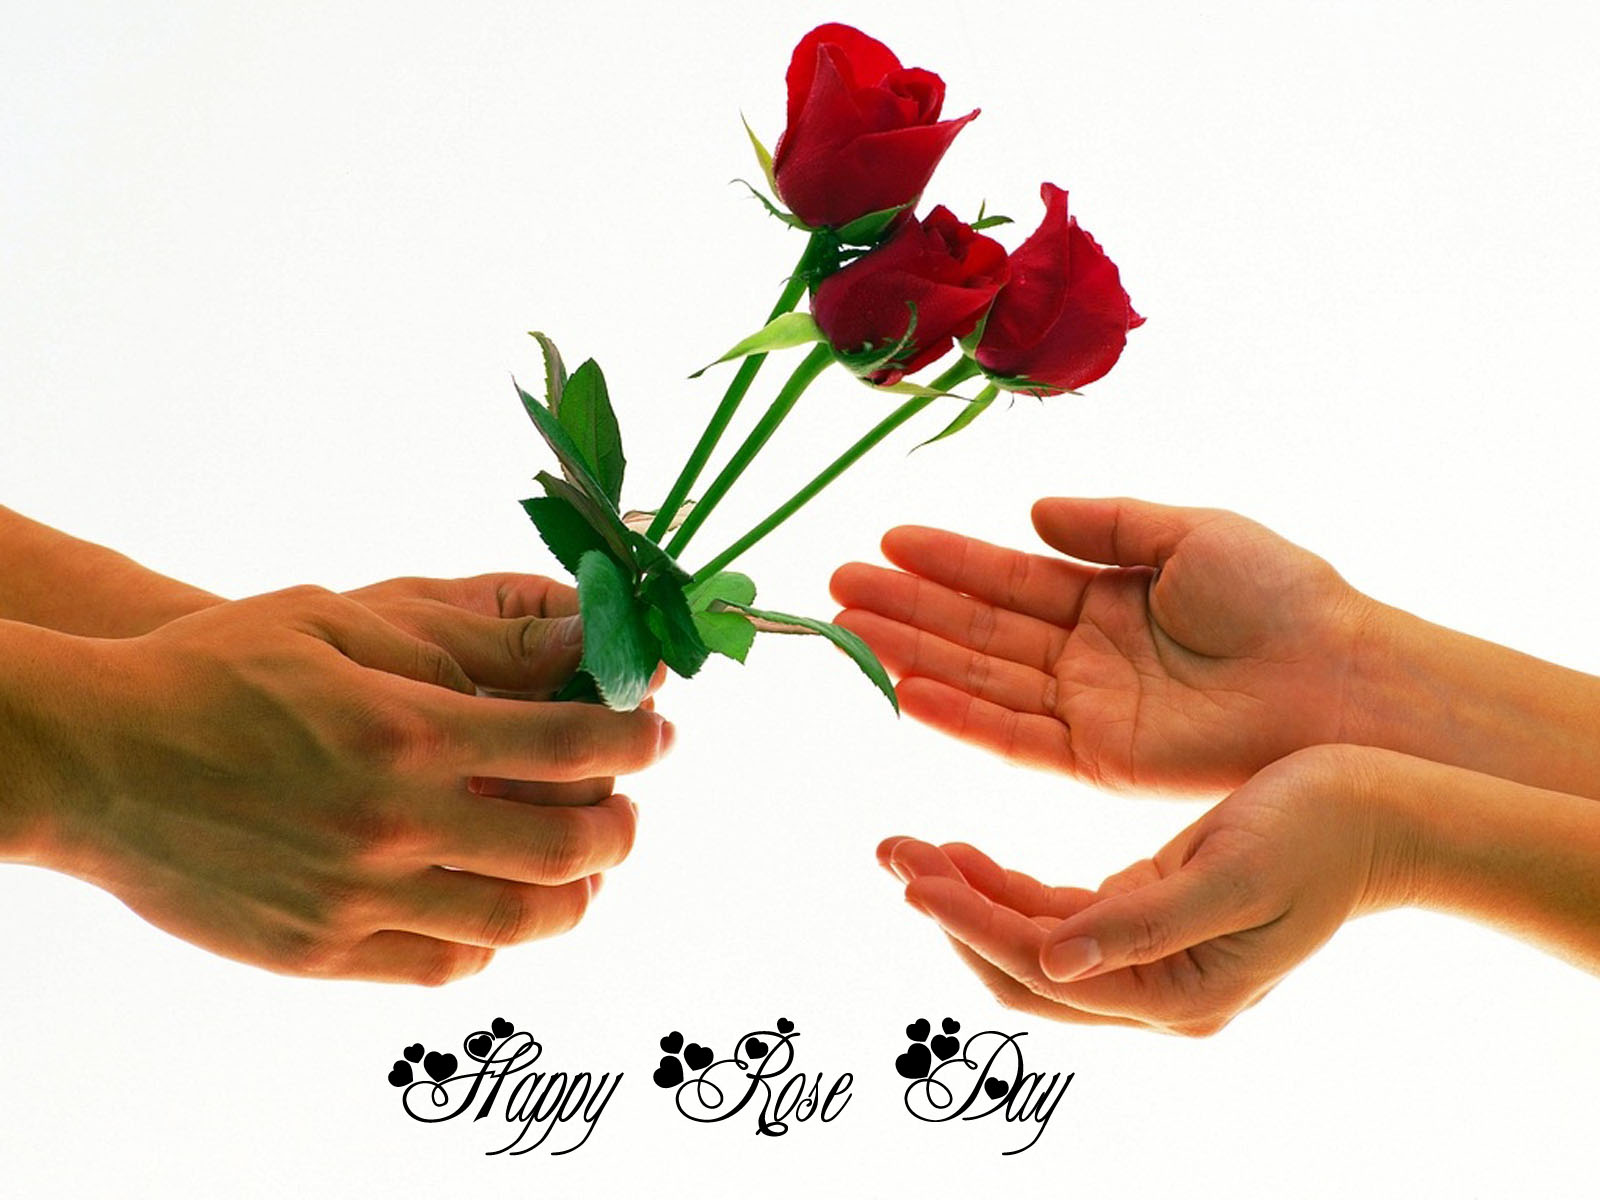 Happy Rose Day Images, Pics, Quotes, Wishes, Photos